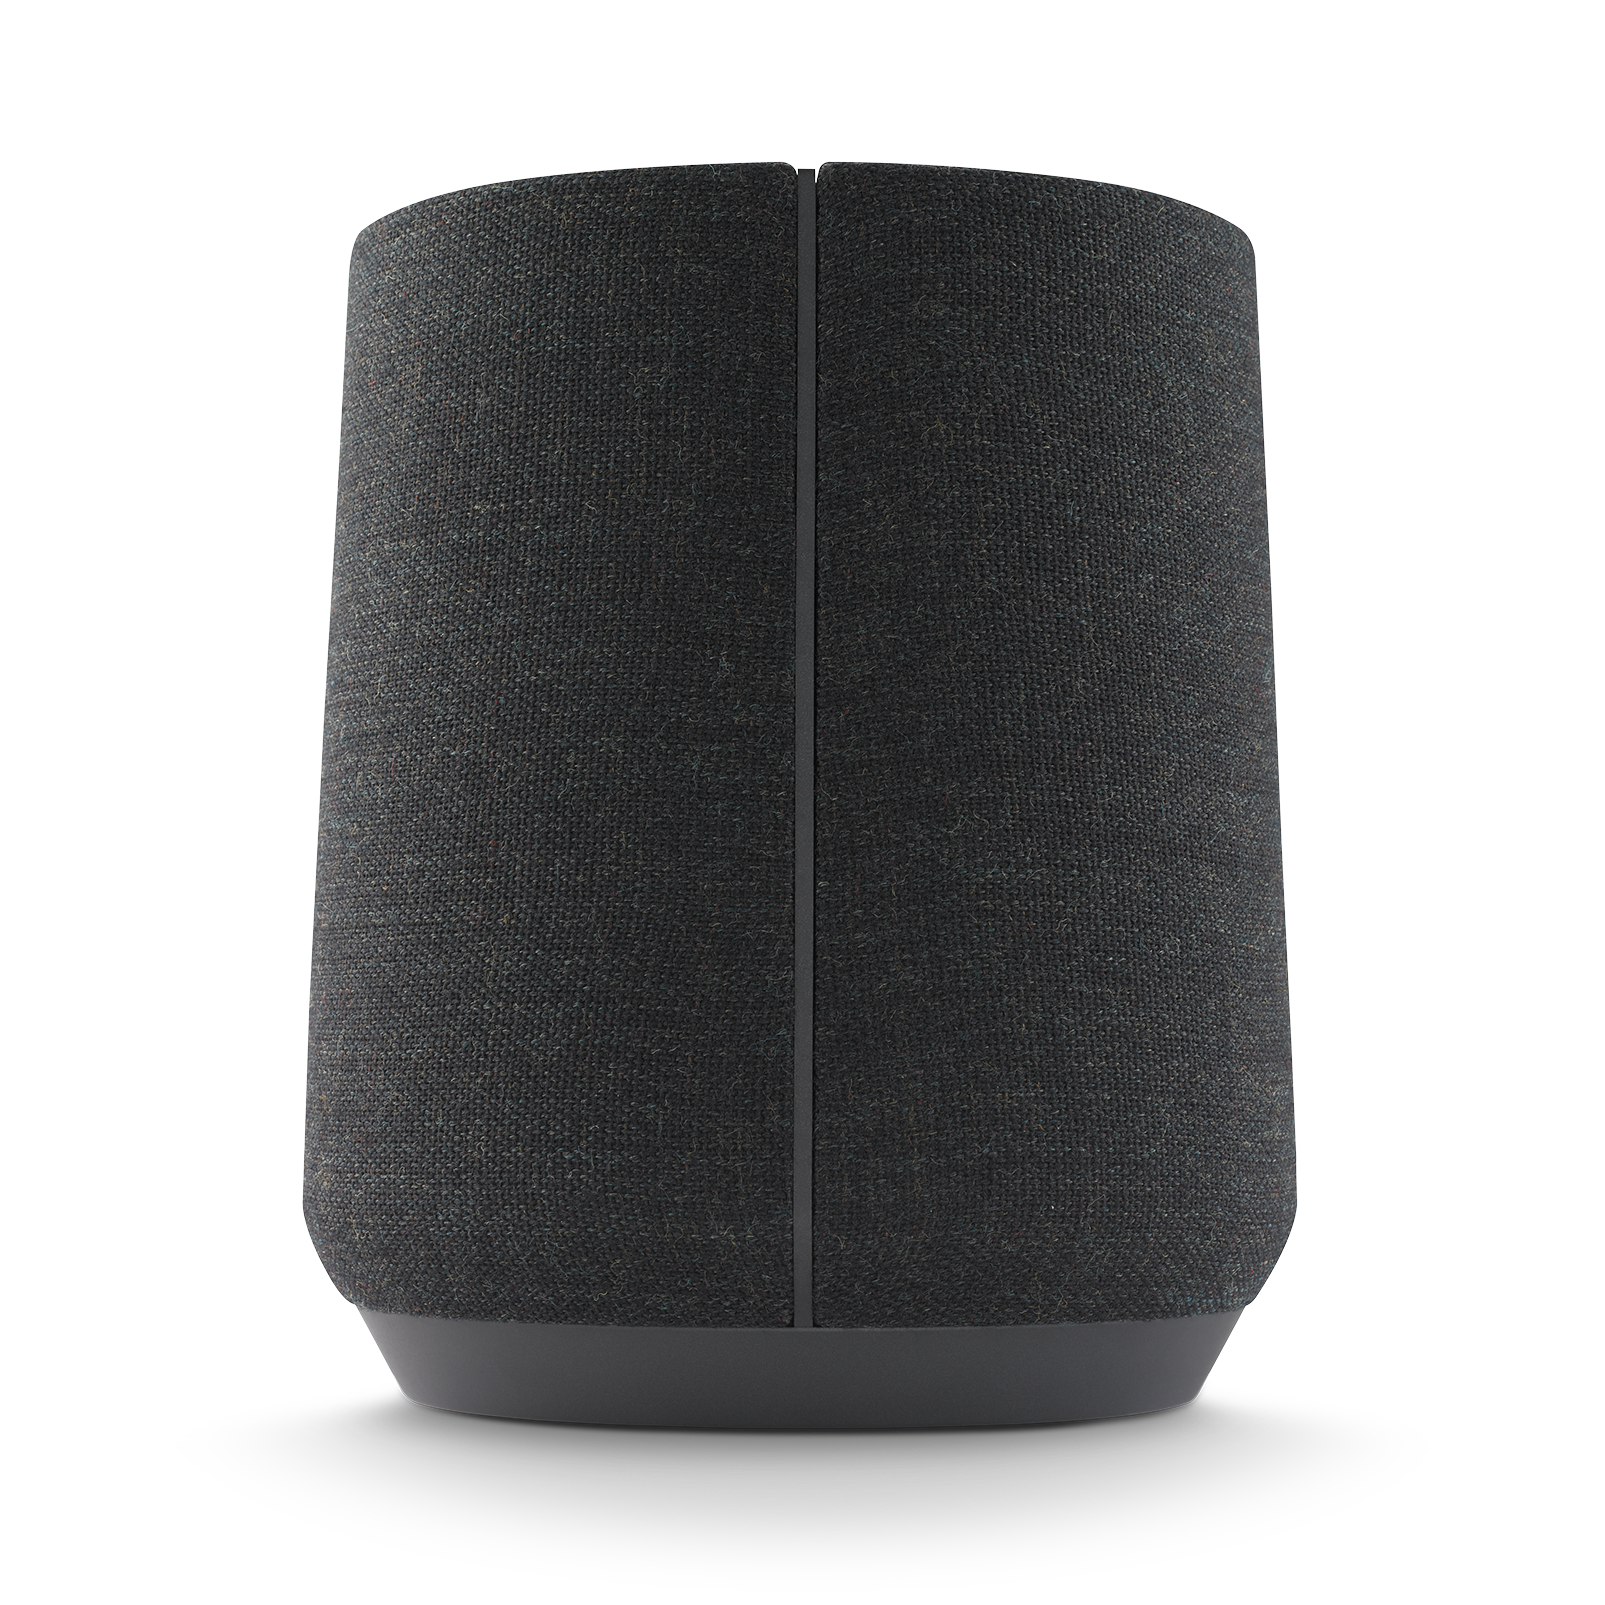 Harman Kardon Citation 500 - Black - Large Tabletop Smart Home Loudspeaker System - Detailshot 3